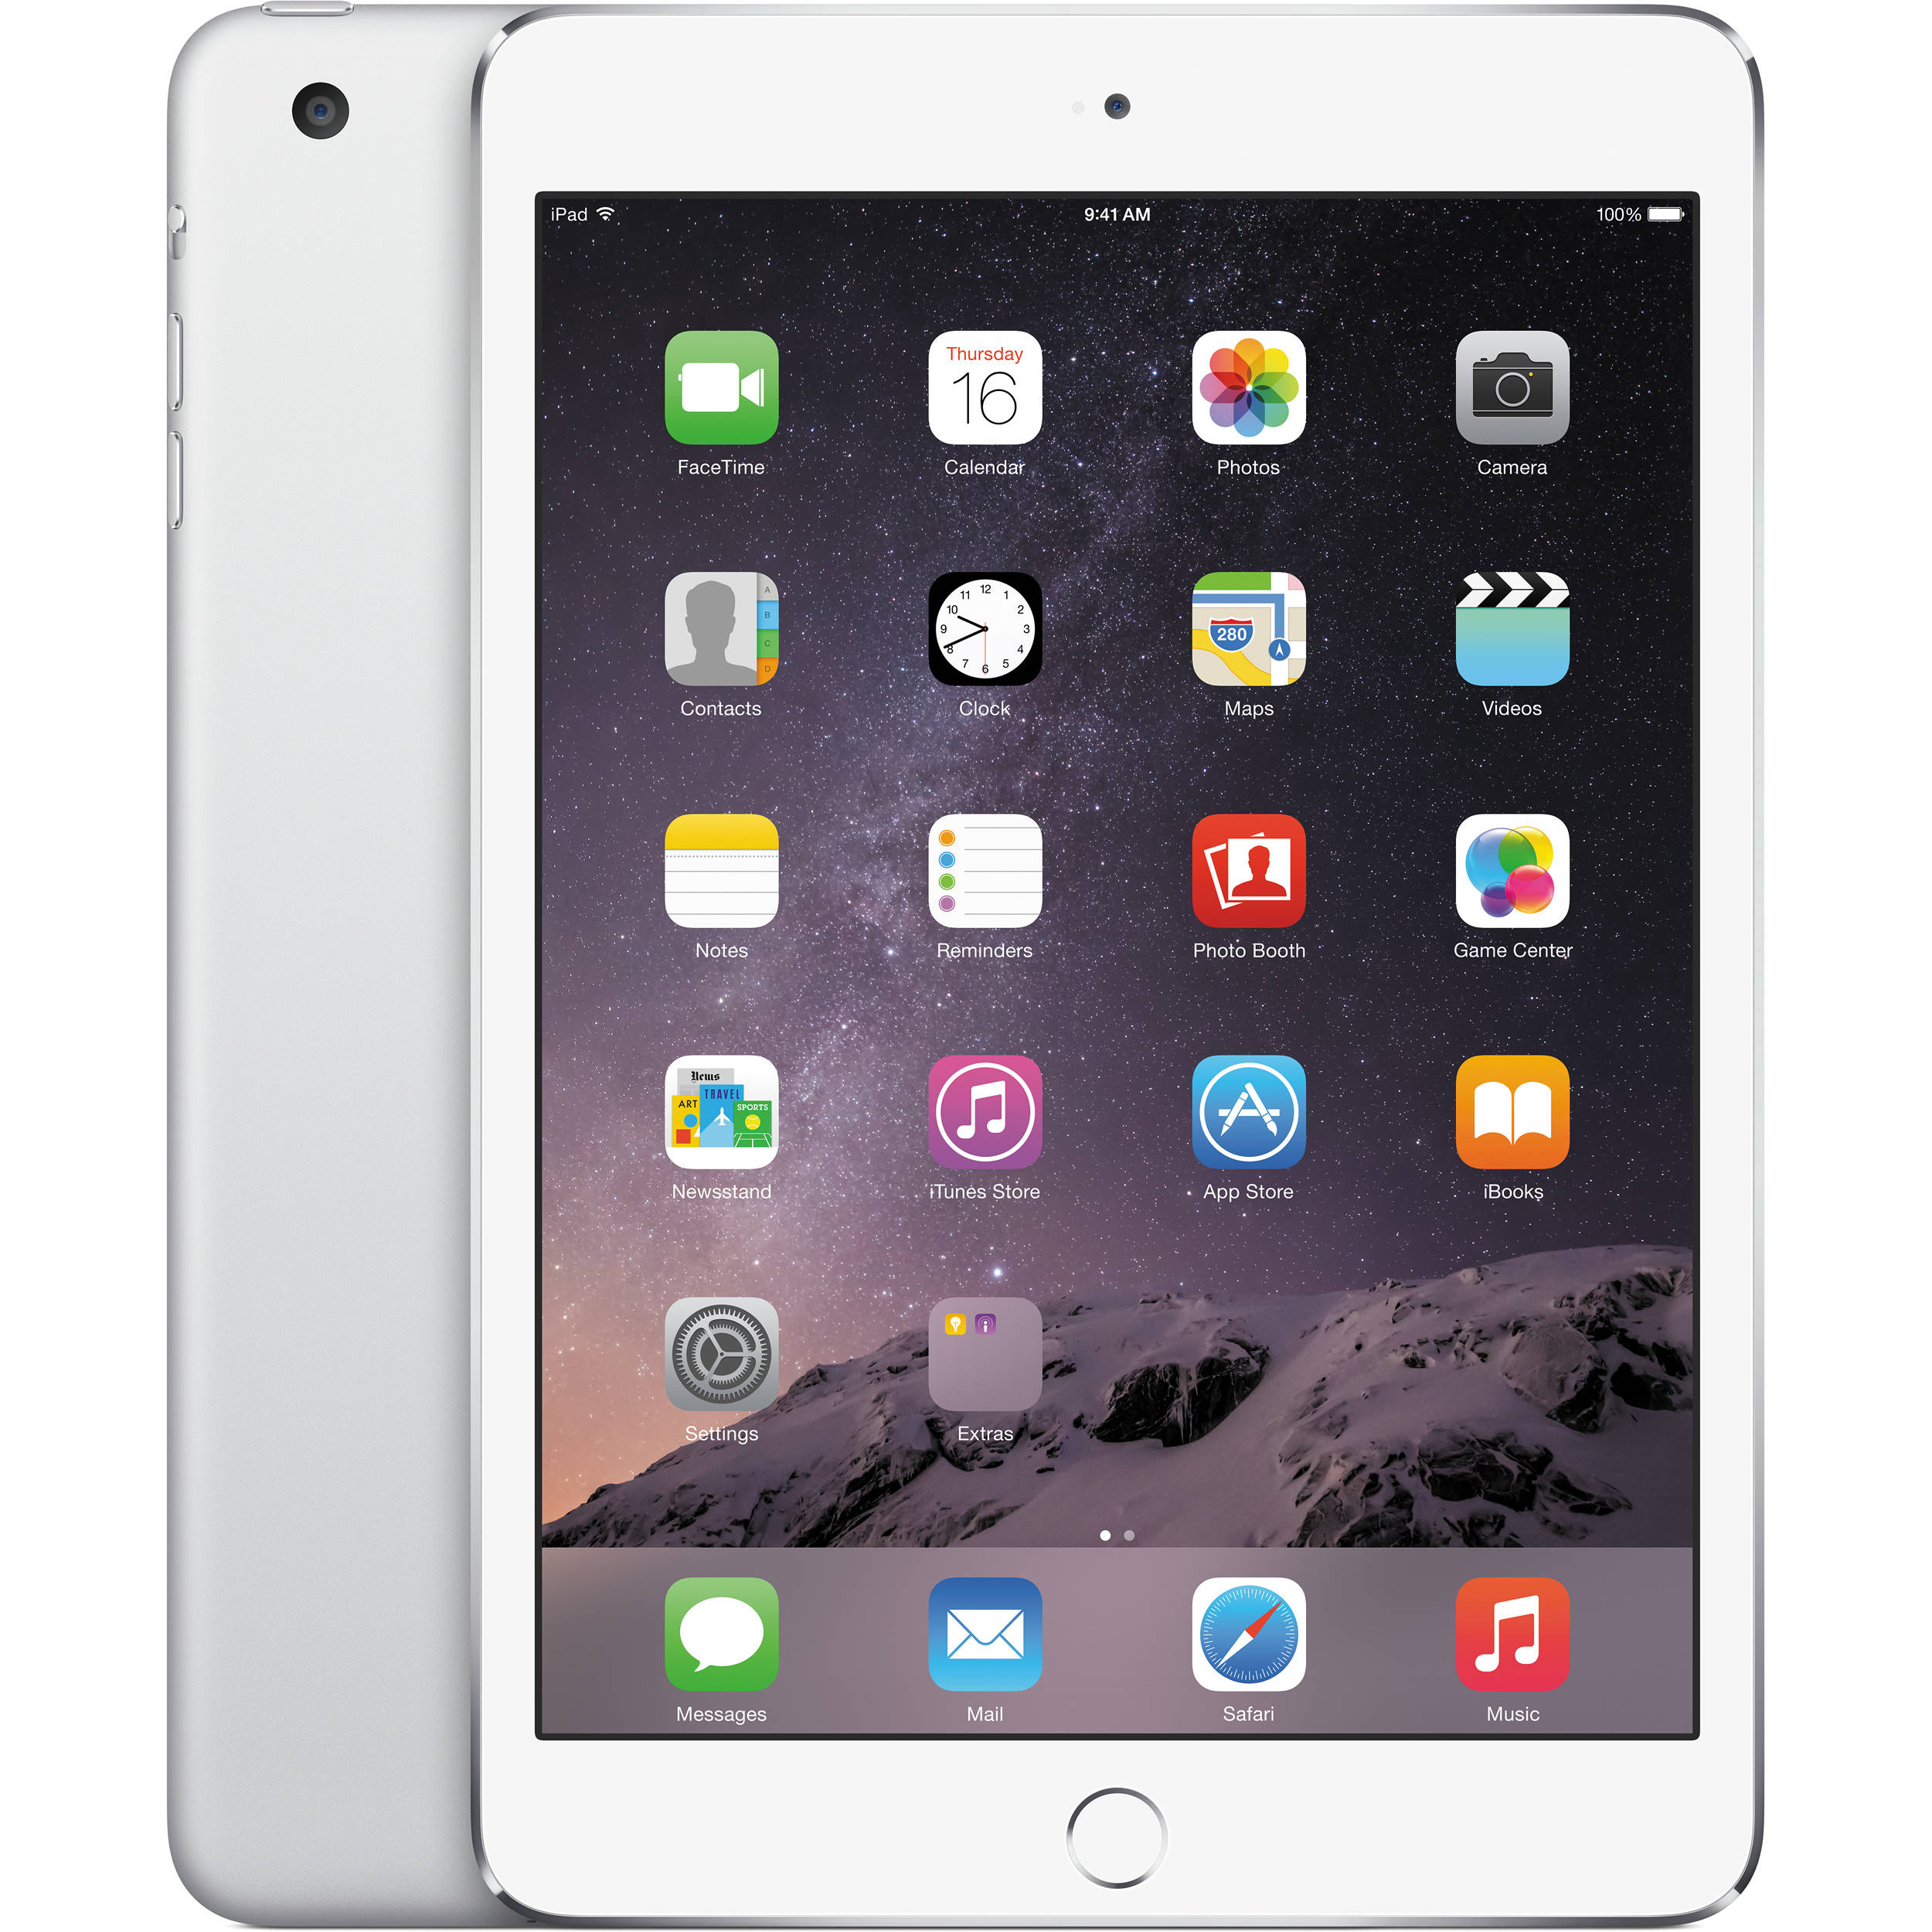 Apple iPad mini 3, 7.9-Inch Retina Display 16GB, Wi-Fi, Silver - MGNV2LL/A (Manufacturer Refurbished)